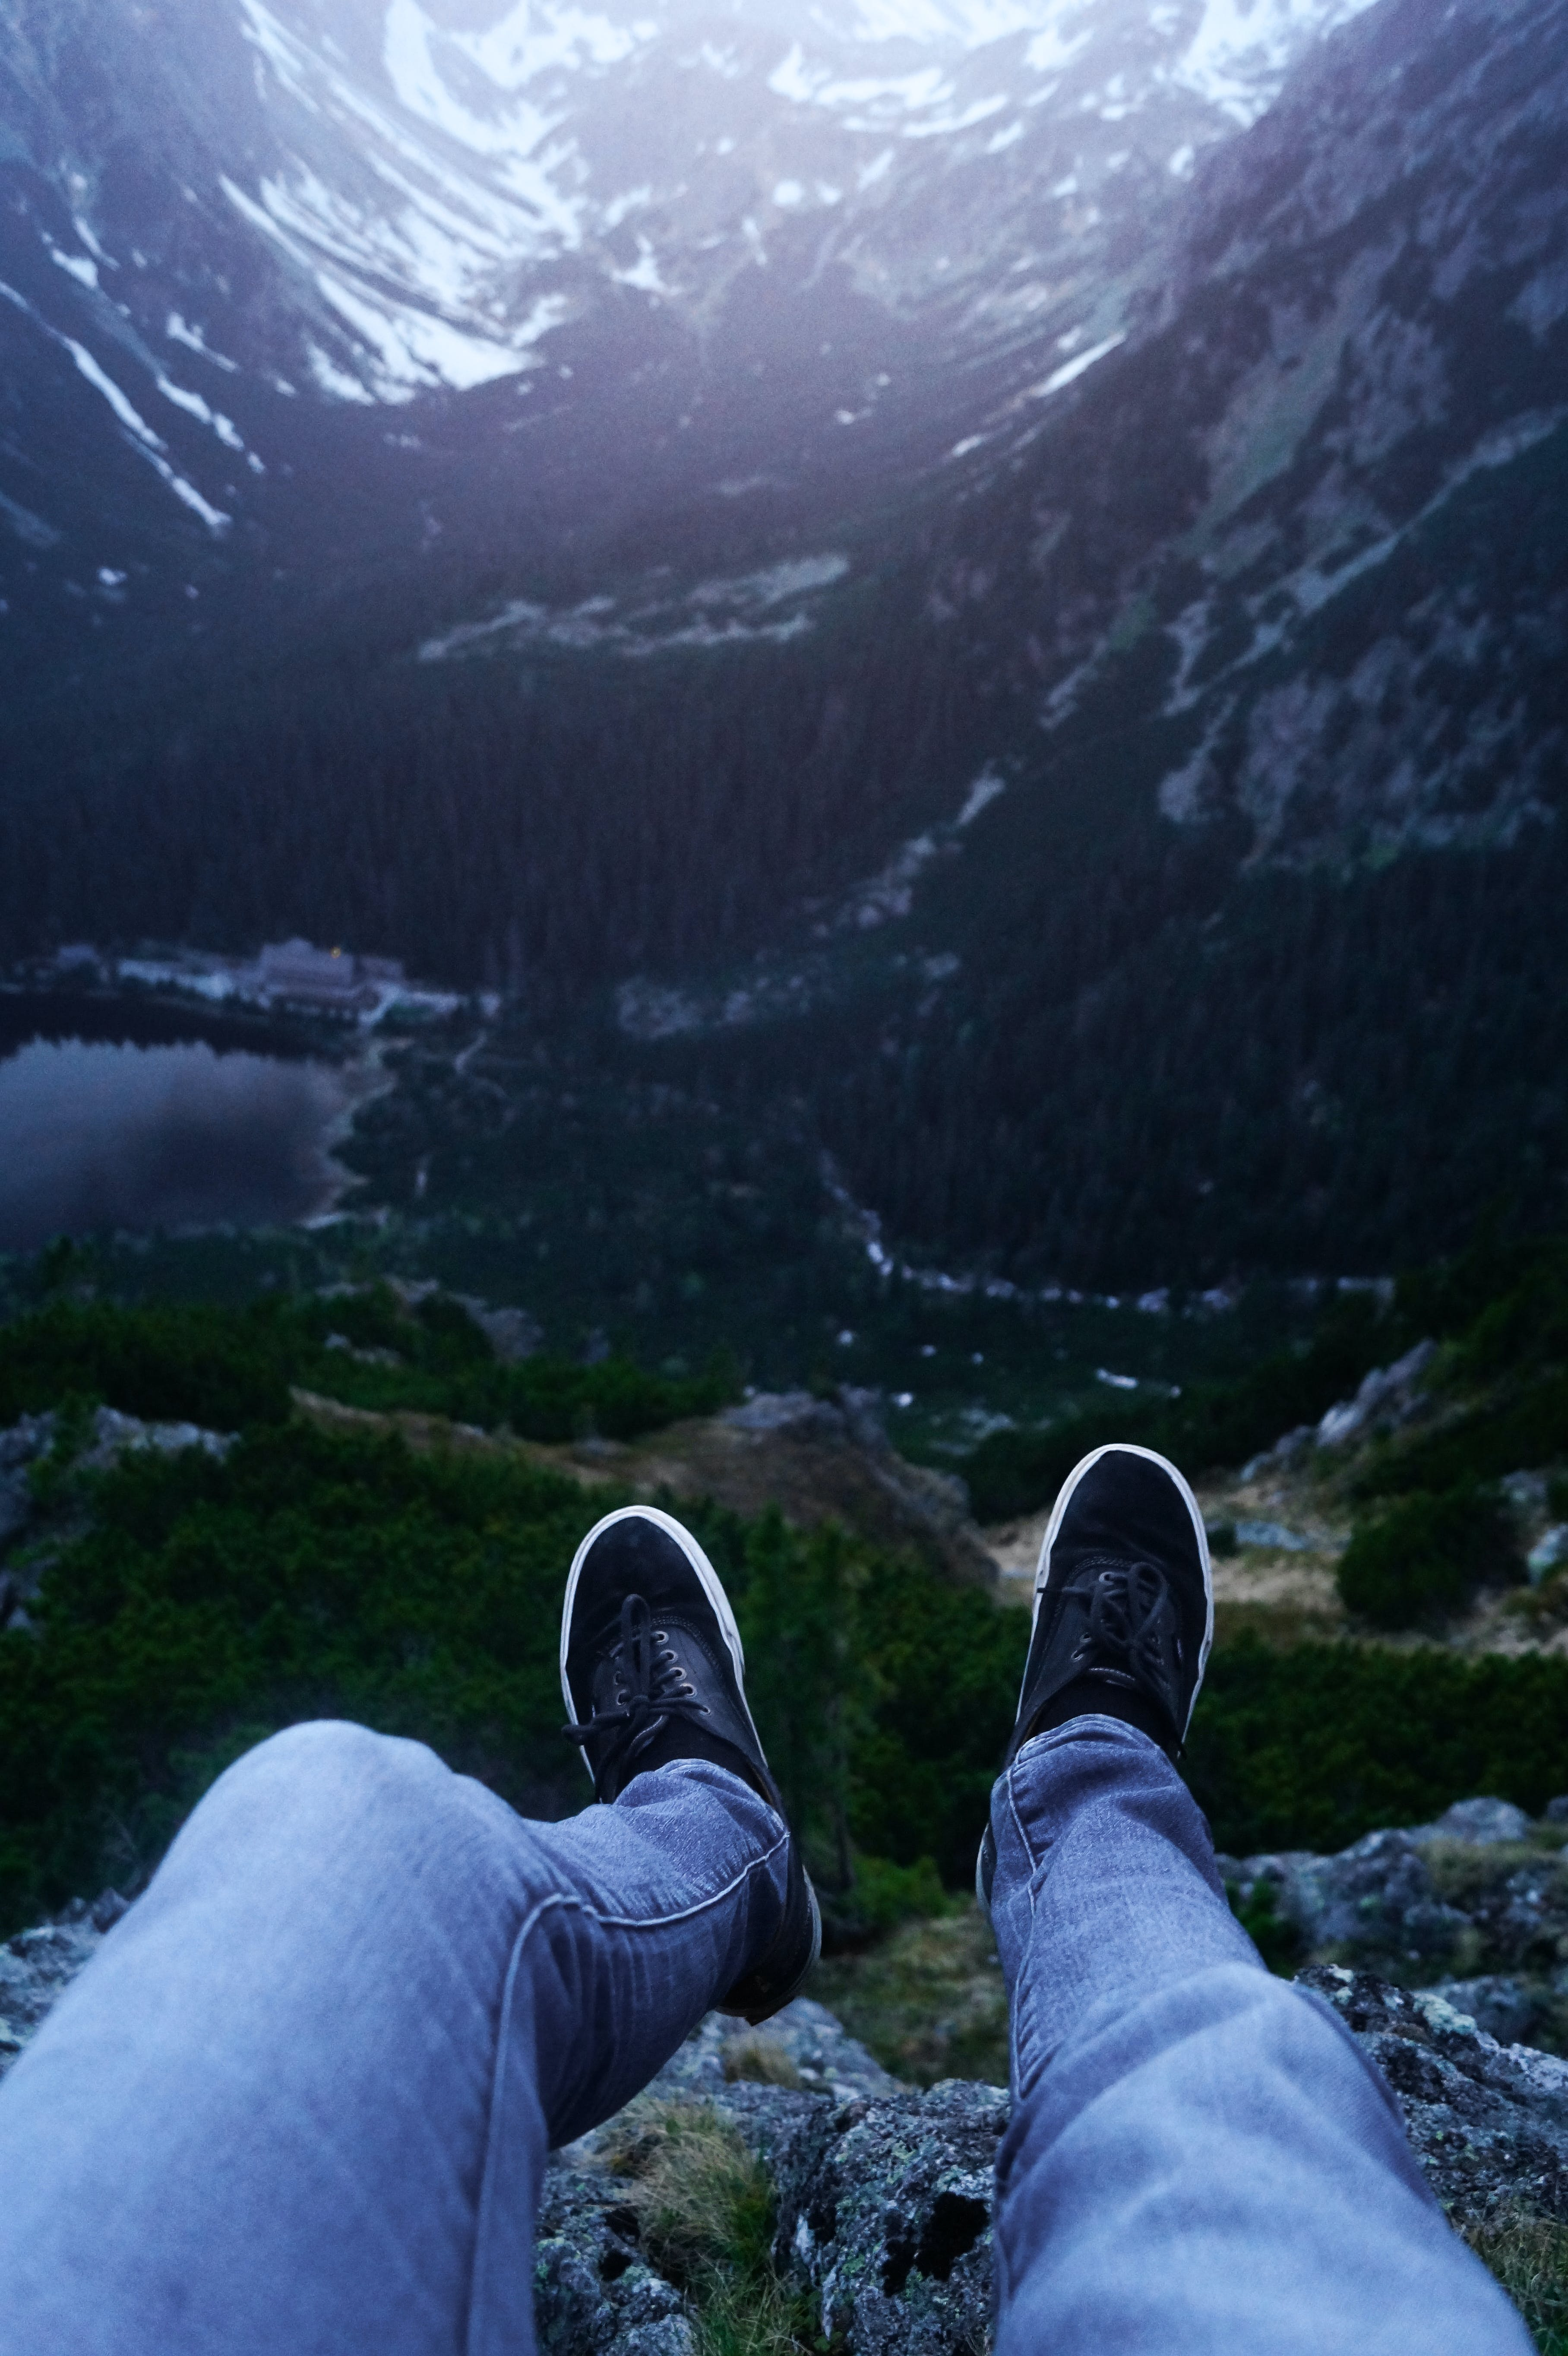 Person Wearing Denim Pants and Black Sneakers Sitting on Rock Cliff Viewing Mountains